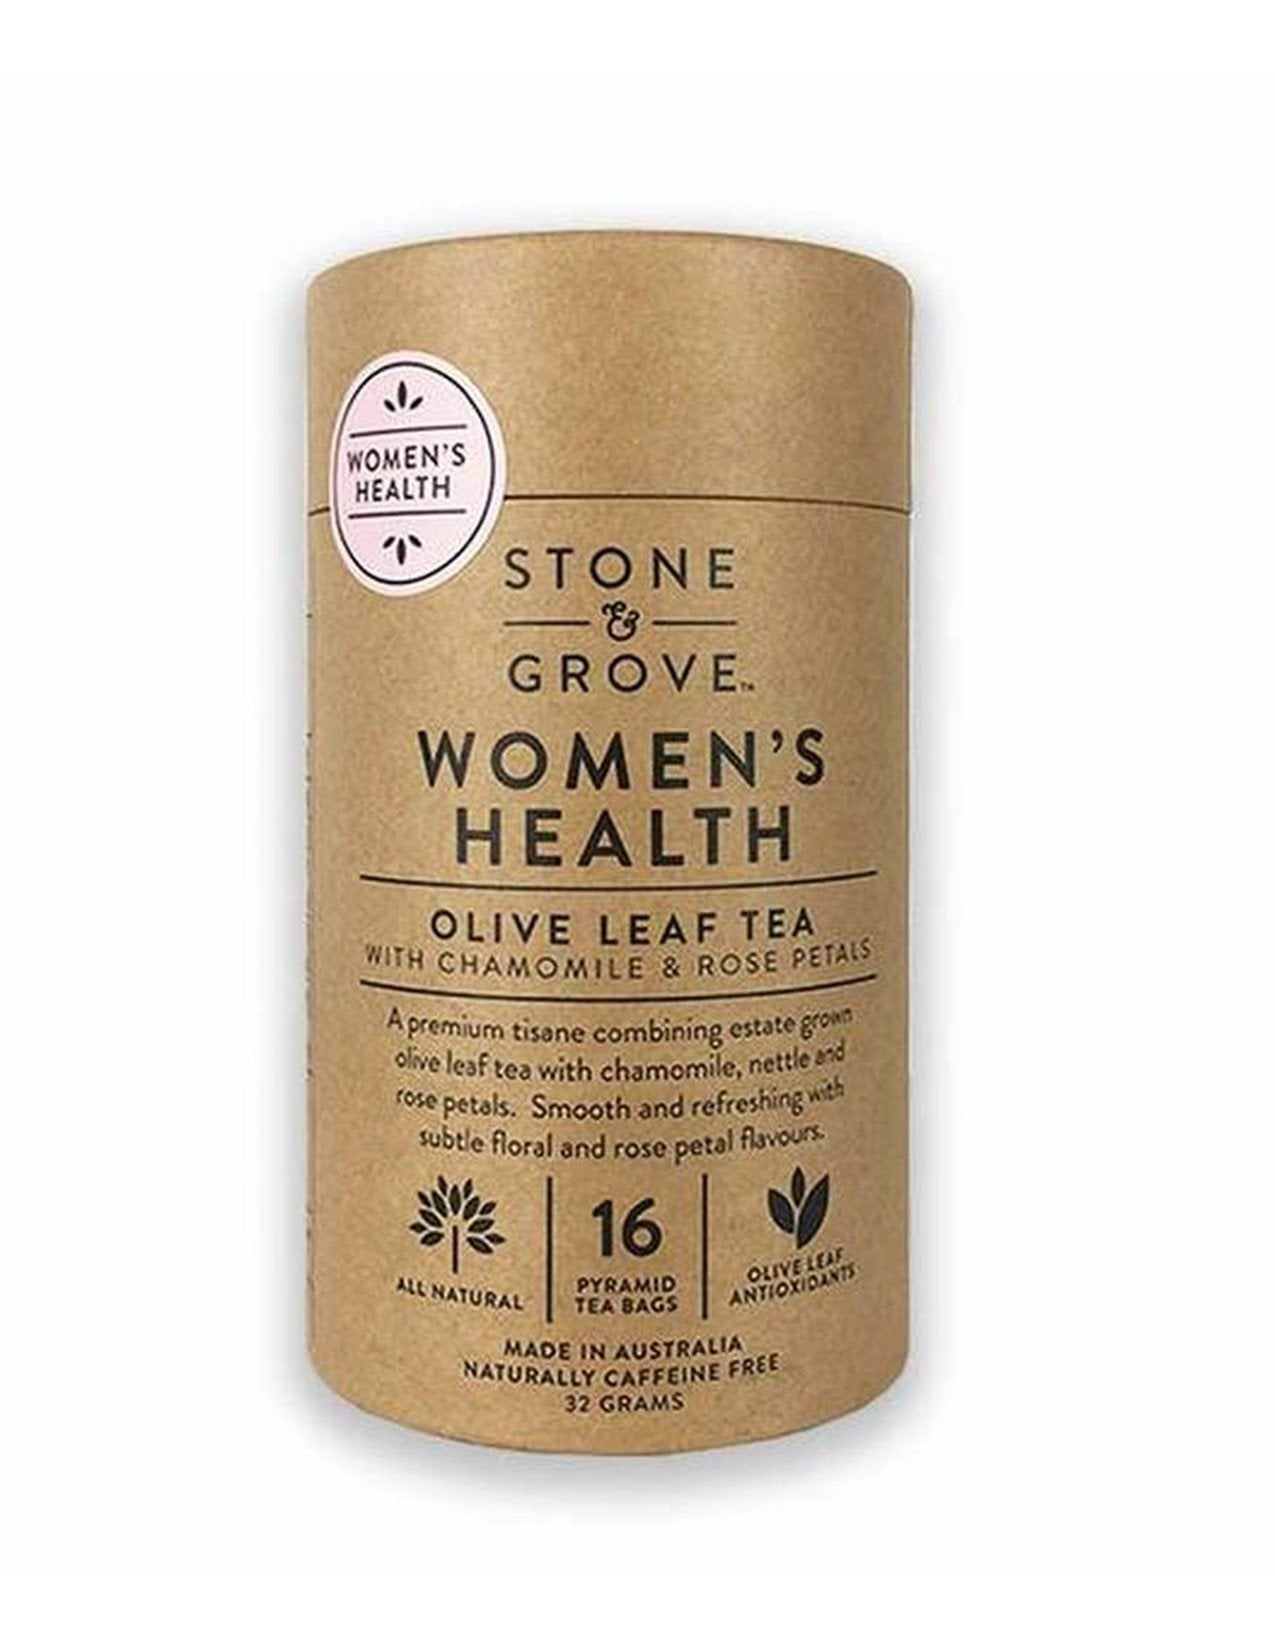 Stone and Grove Women's Health